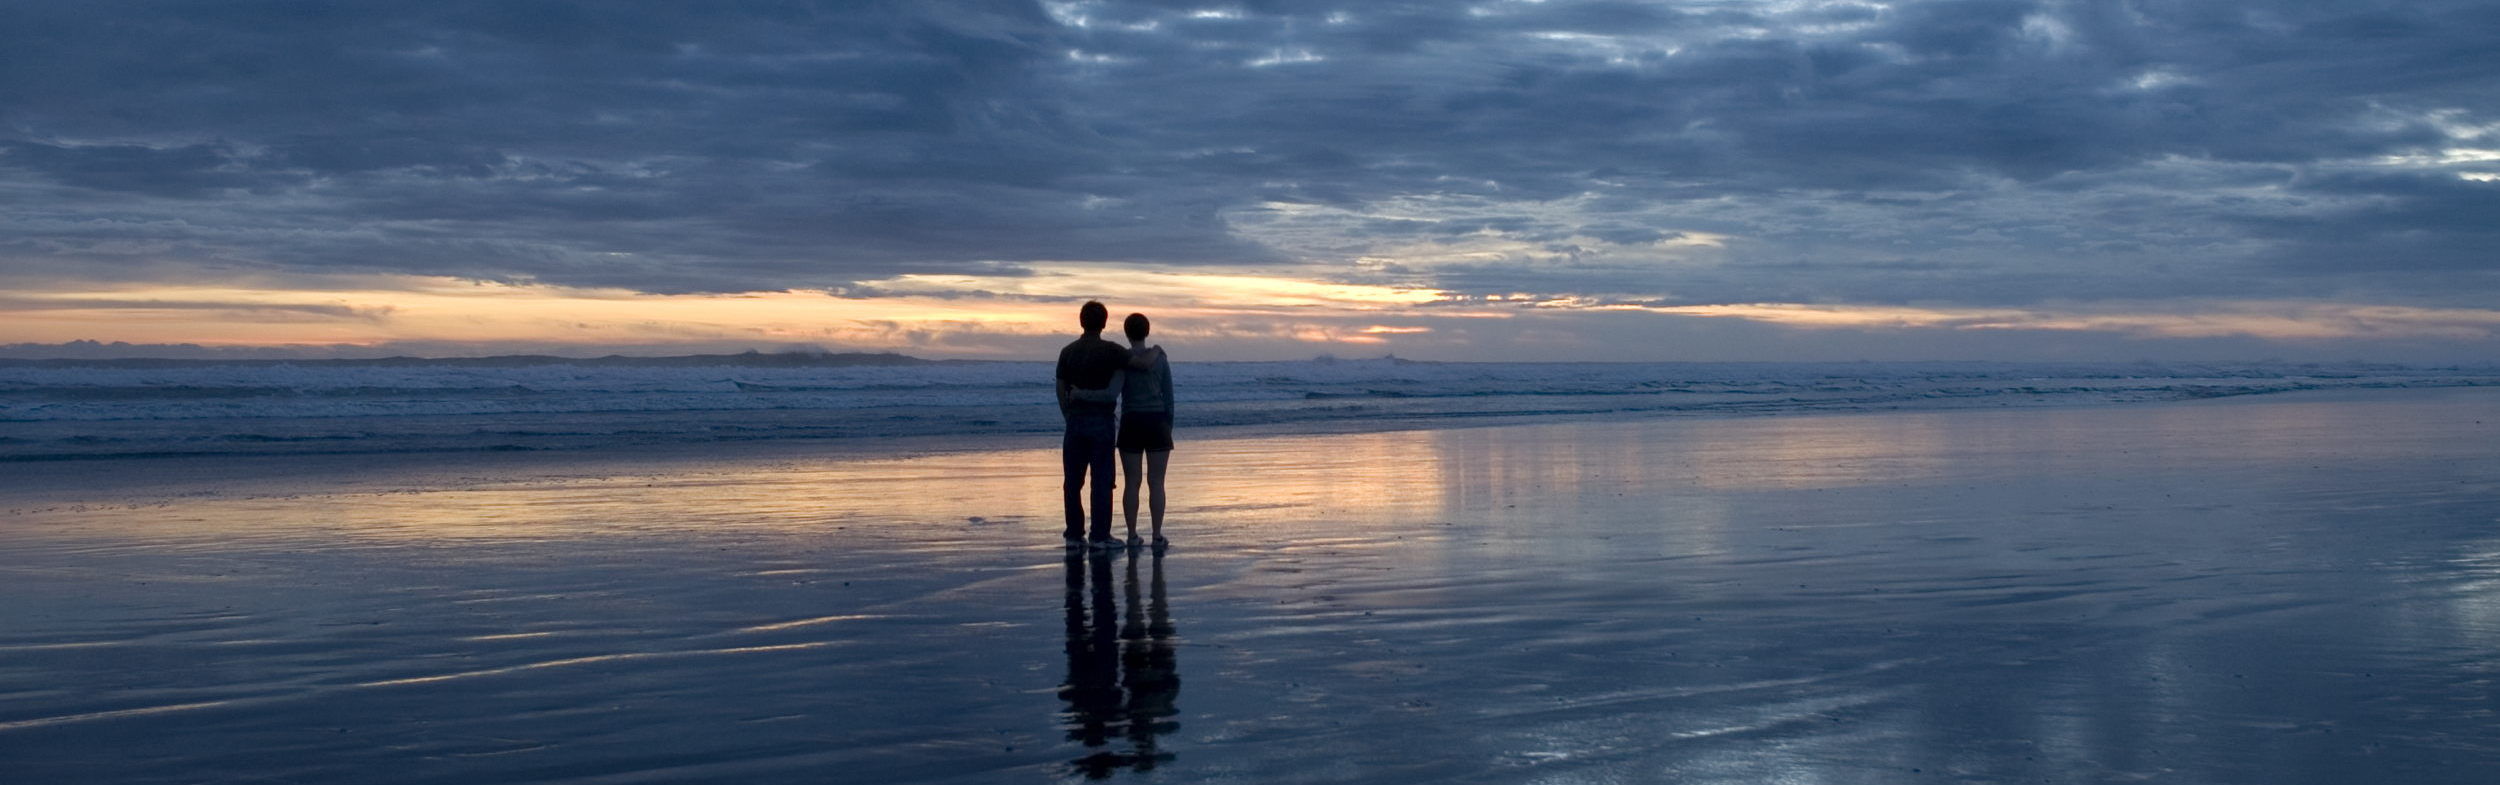 Two people on beach after sunset